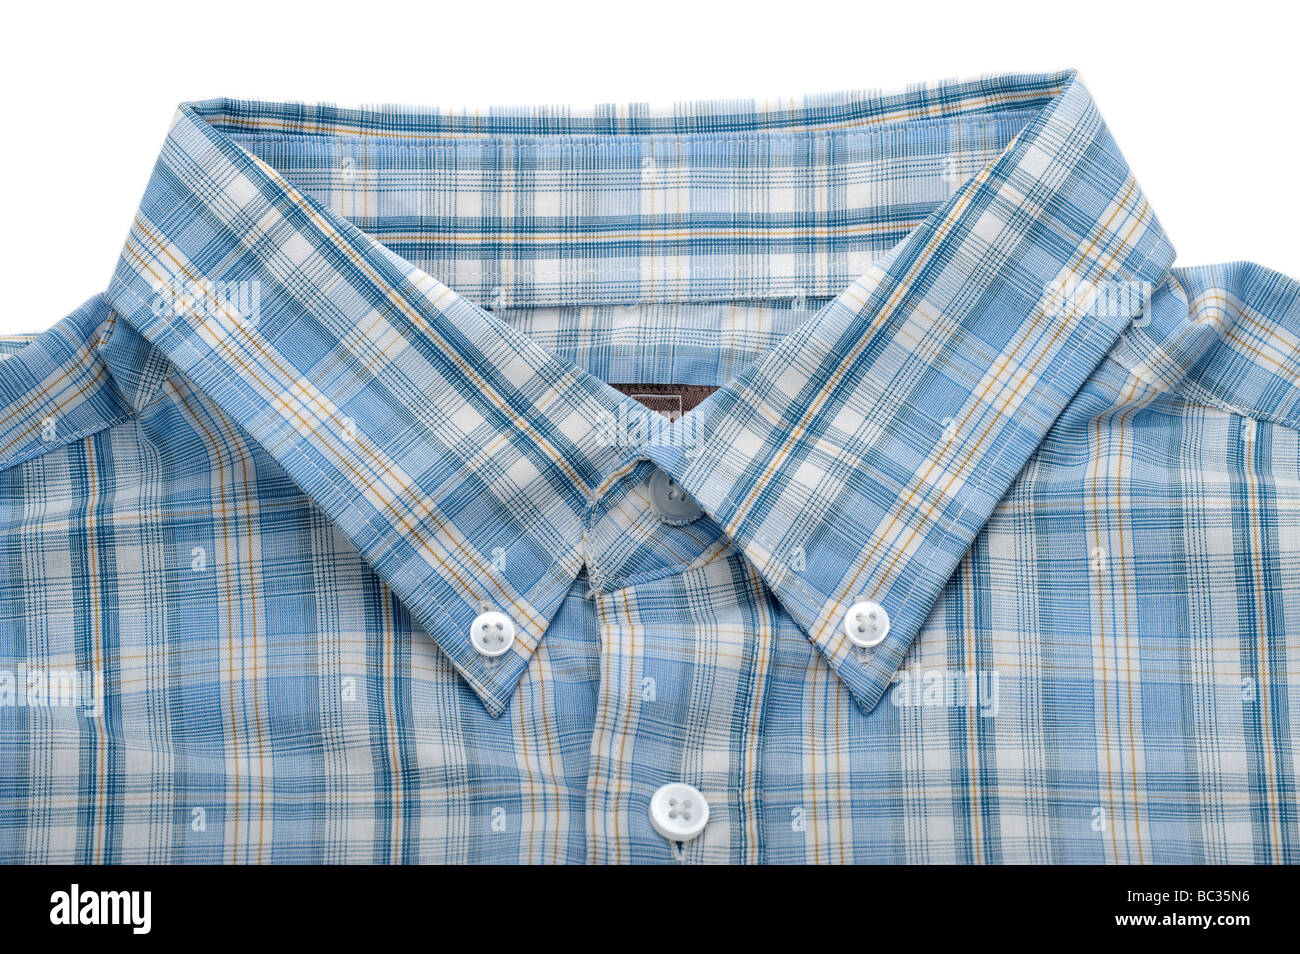 Mans buttoned down collar on a blue checked shirt - Stock Image